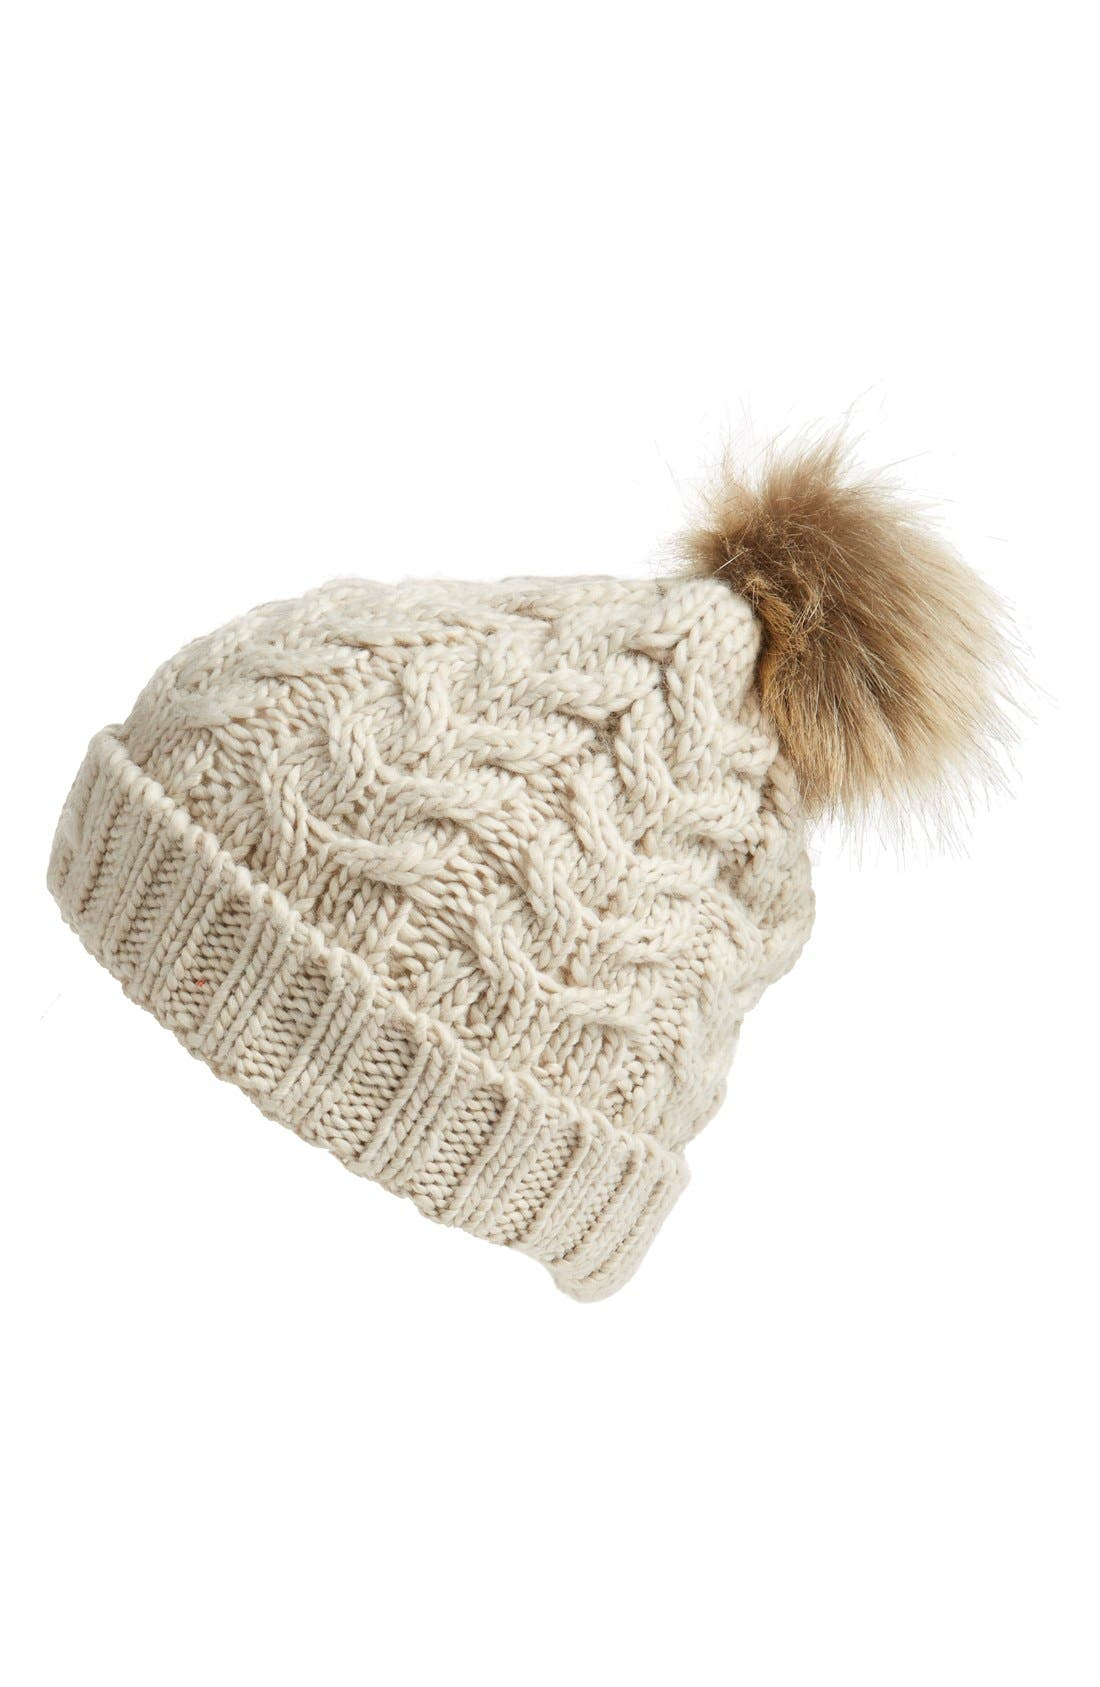 Knit Beanie with Faux Fur Pompom,                             Main thumbnail 1, color,                             Oatmeal